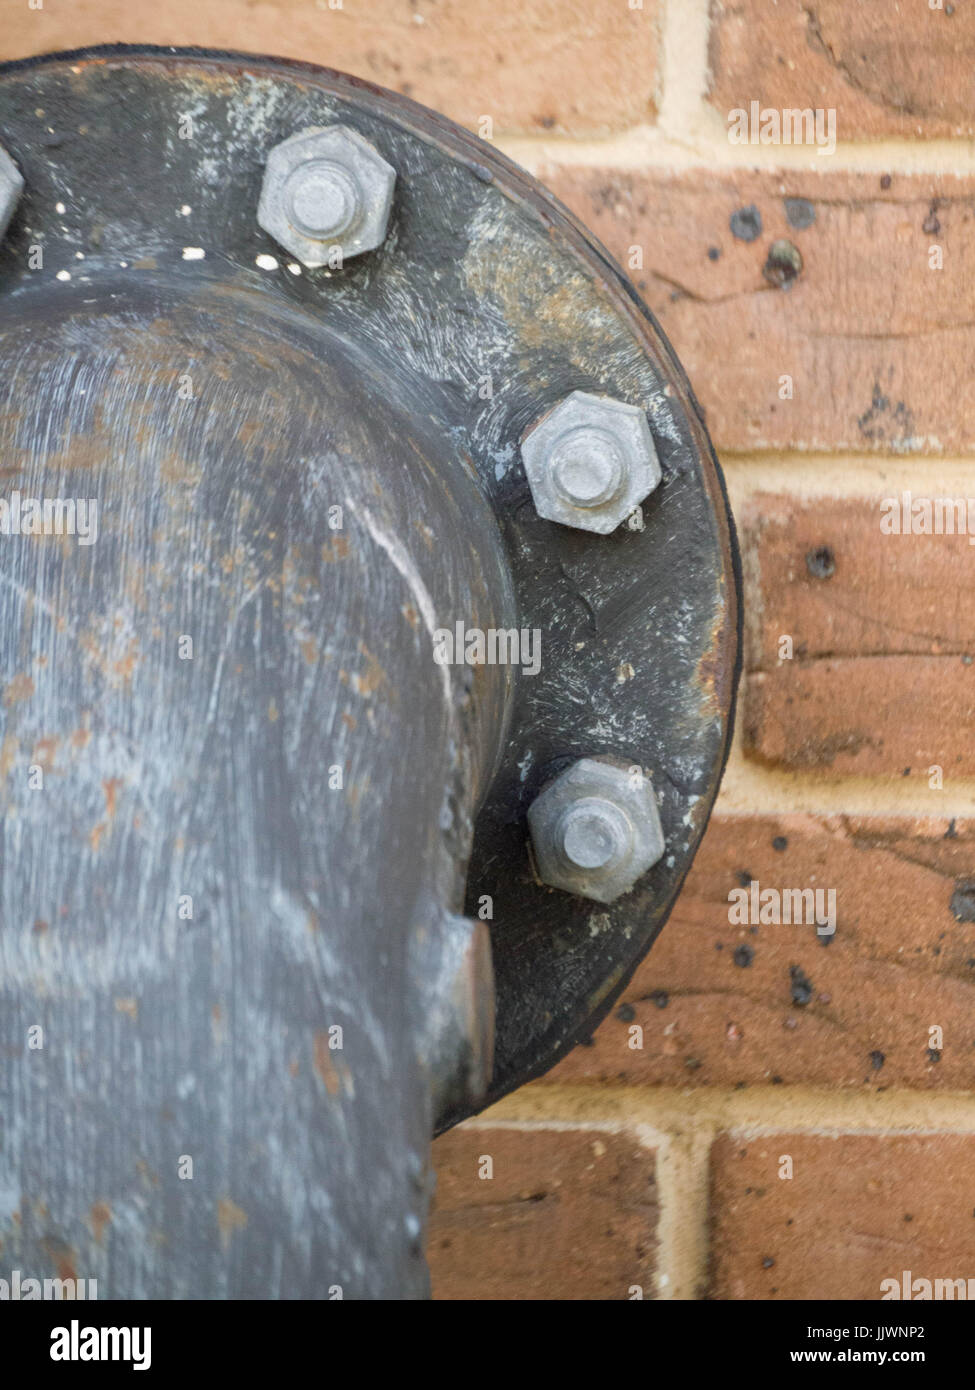 industrial Pipe on Brick Wall Background - Stock Image